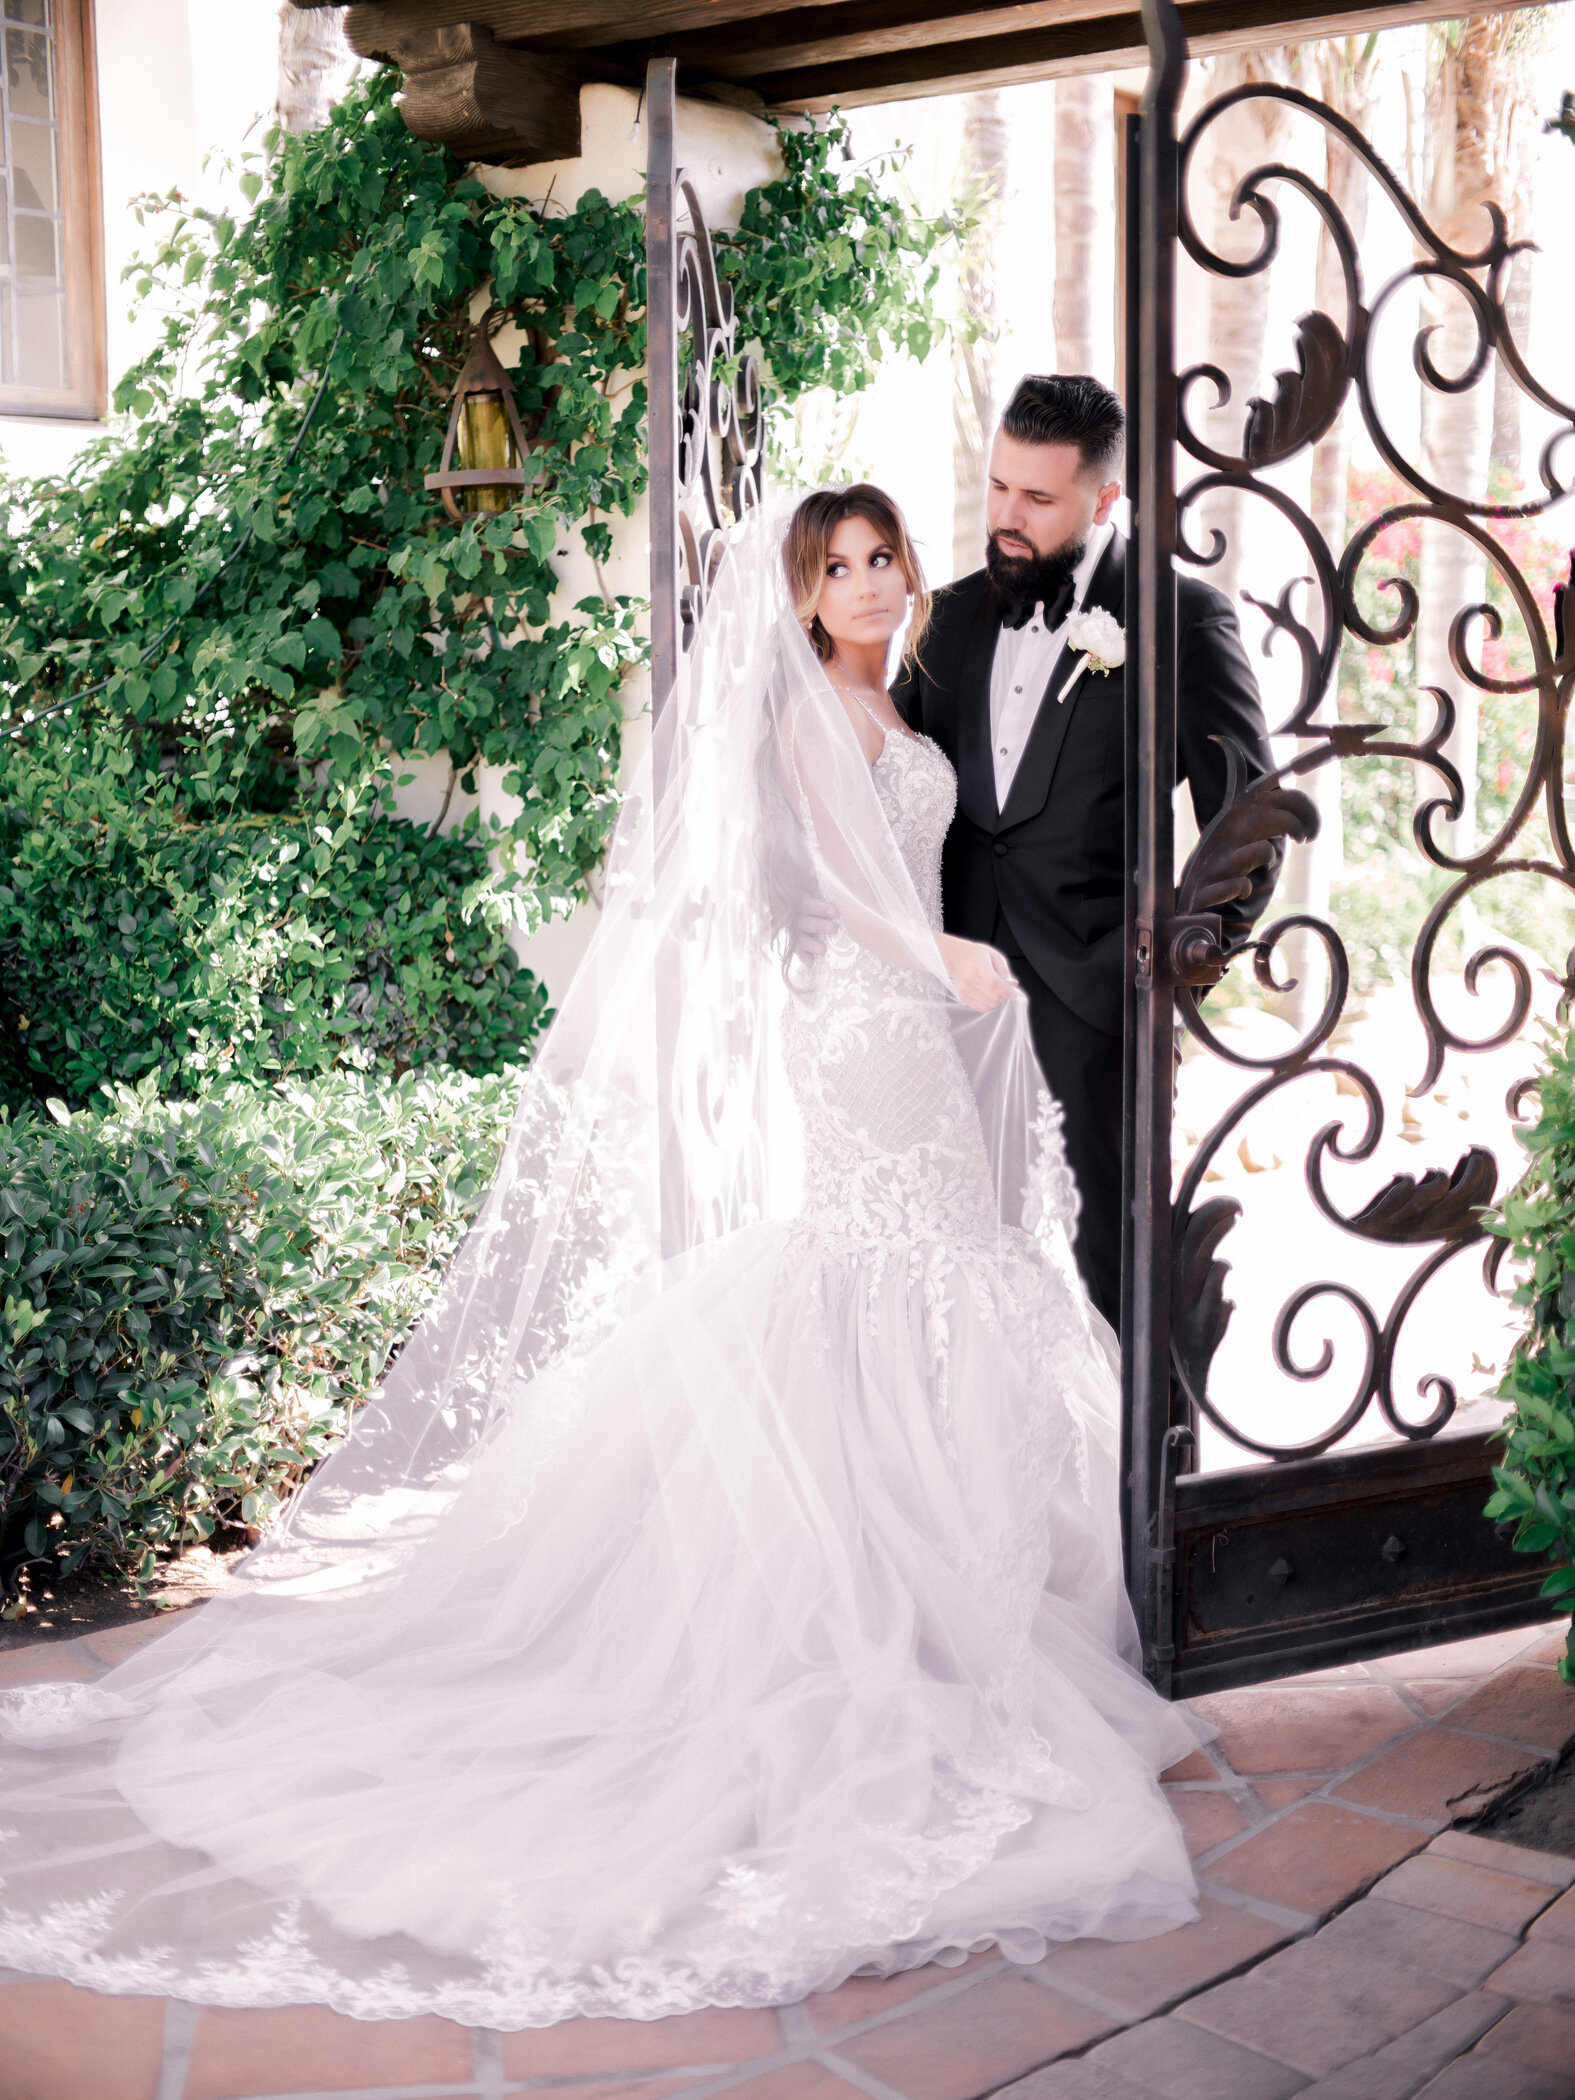 beverly hills couple have wedding at hummingbird nest ranch los angeles so-cal wedding bride and groom outdoor ceremony